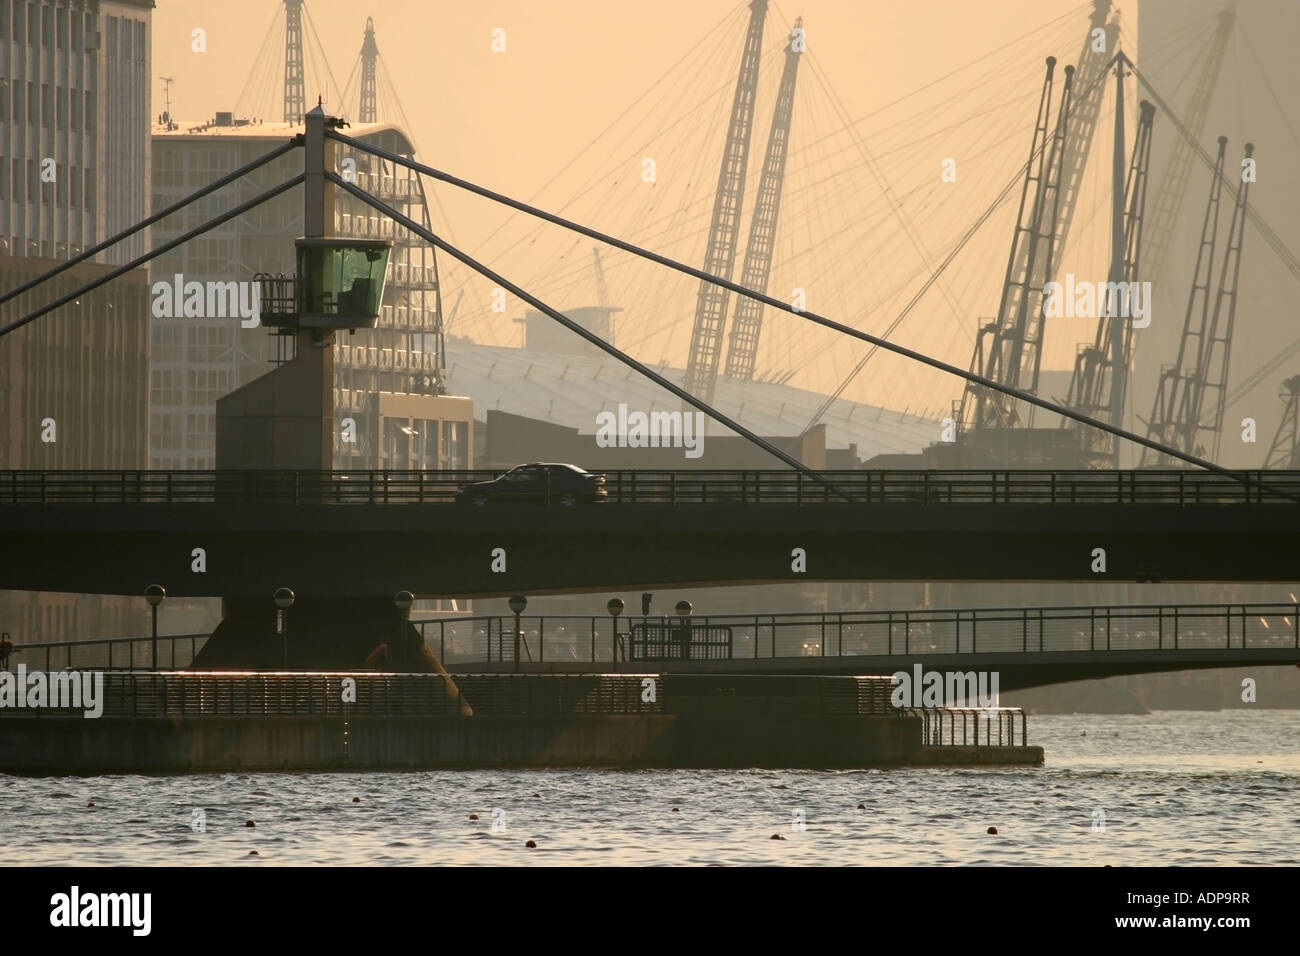 Connaught Bridge, Docklands, London, England, UK. - Stock Image